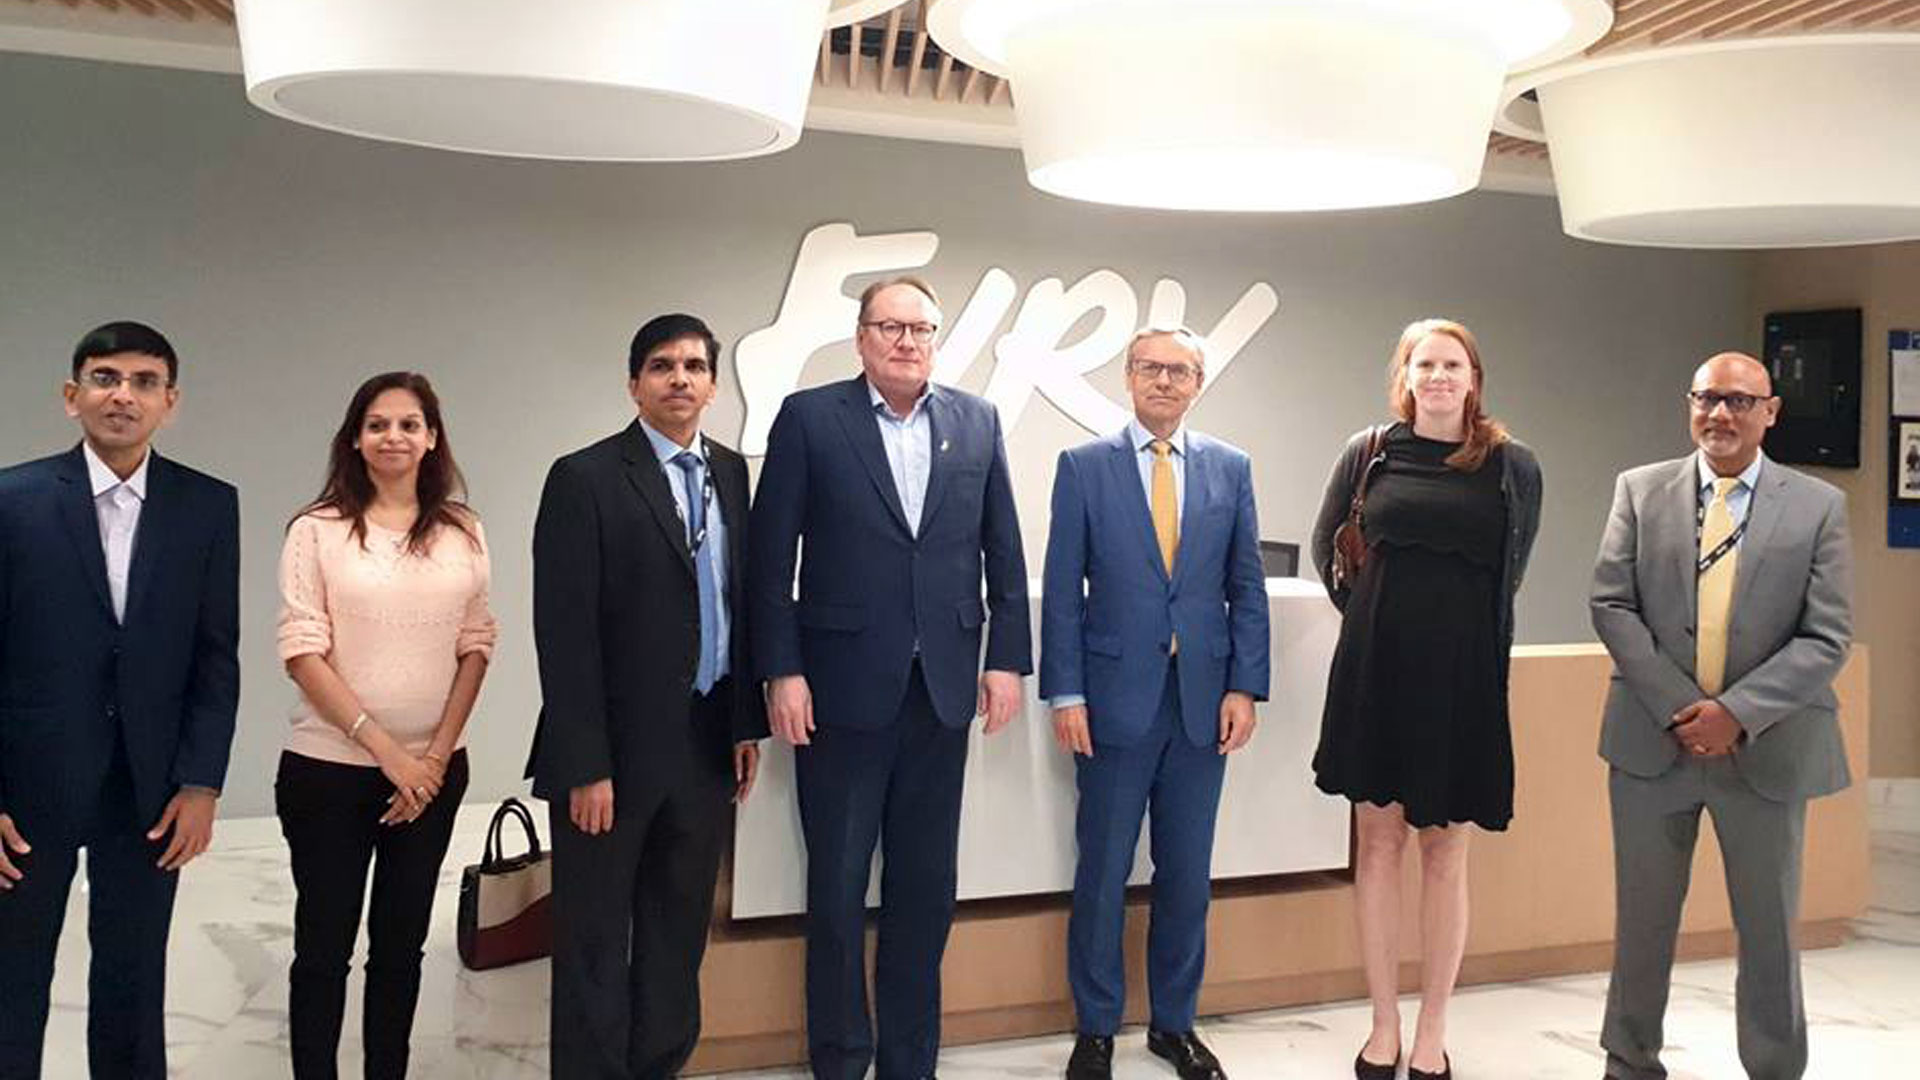 NORWAY'S AMBASSADOR TO INDIA VISITS EVRY IN BANGALORE